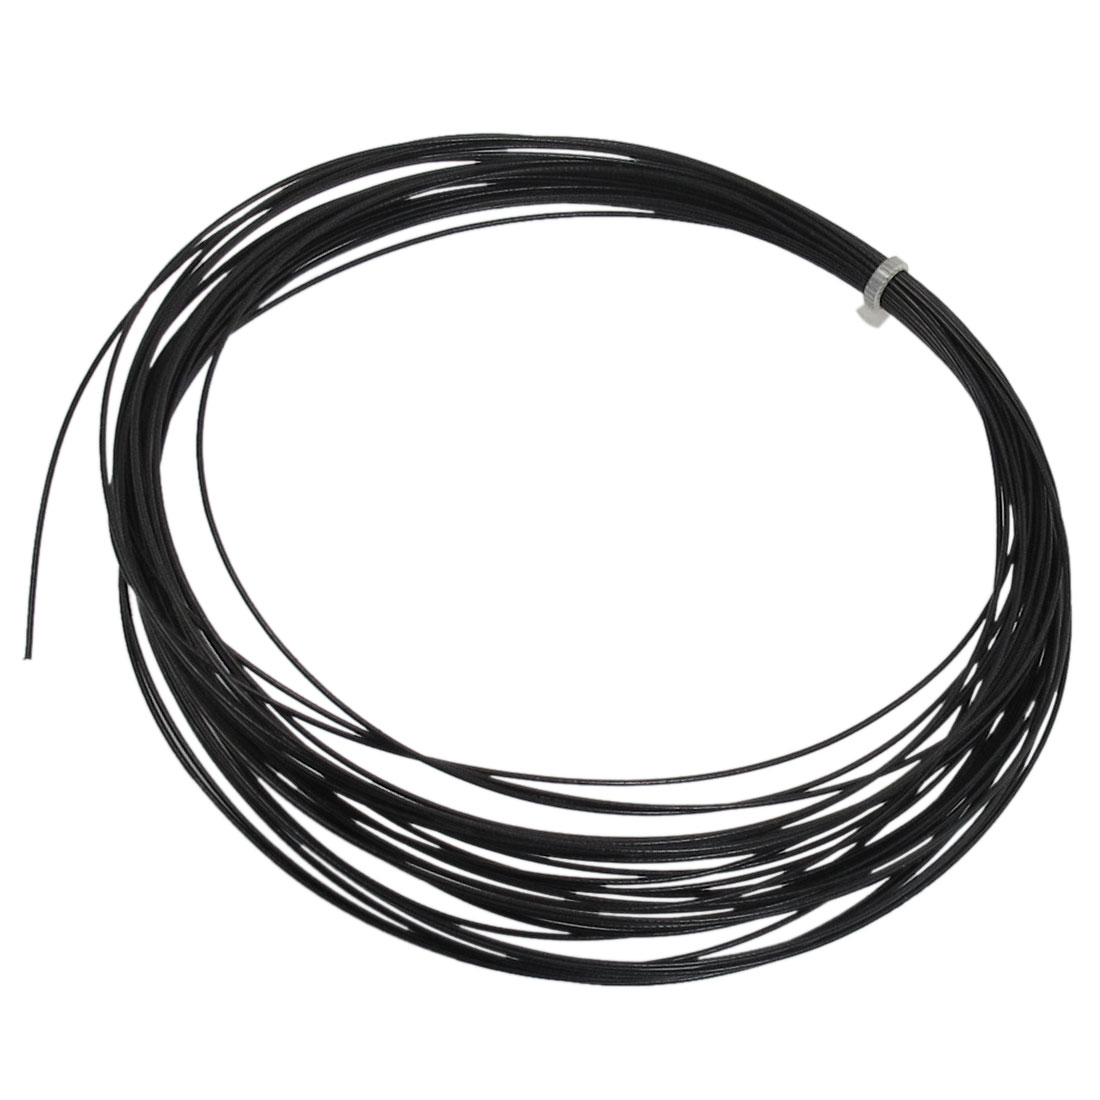 Sports Badminton Racket Racquet String Line Black 10M Length 0.8mm Gauge